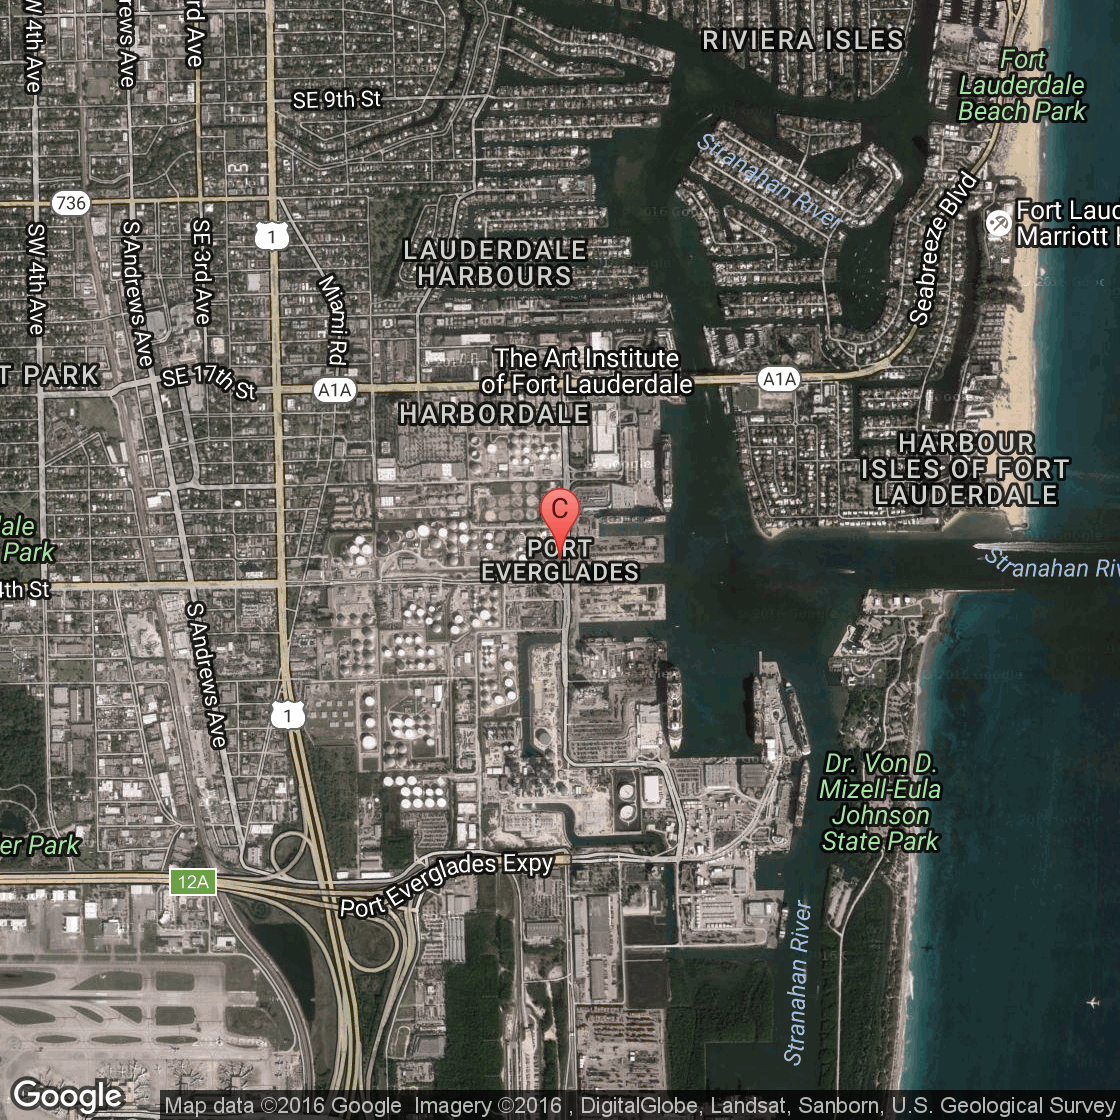 Port Of Miami Parking: How To Obtain A Port Pass For Tampa, Florida